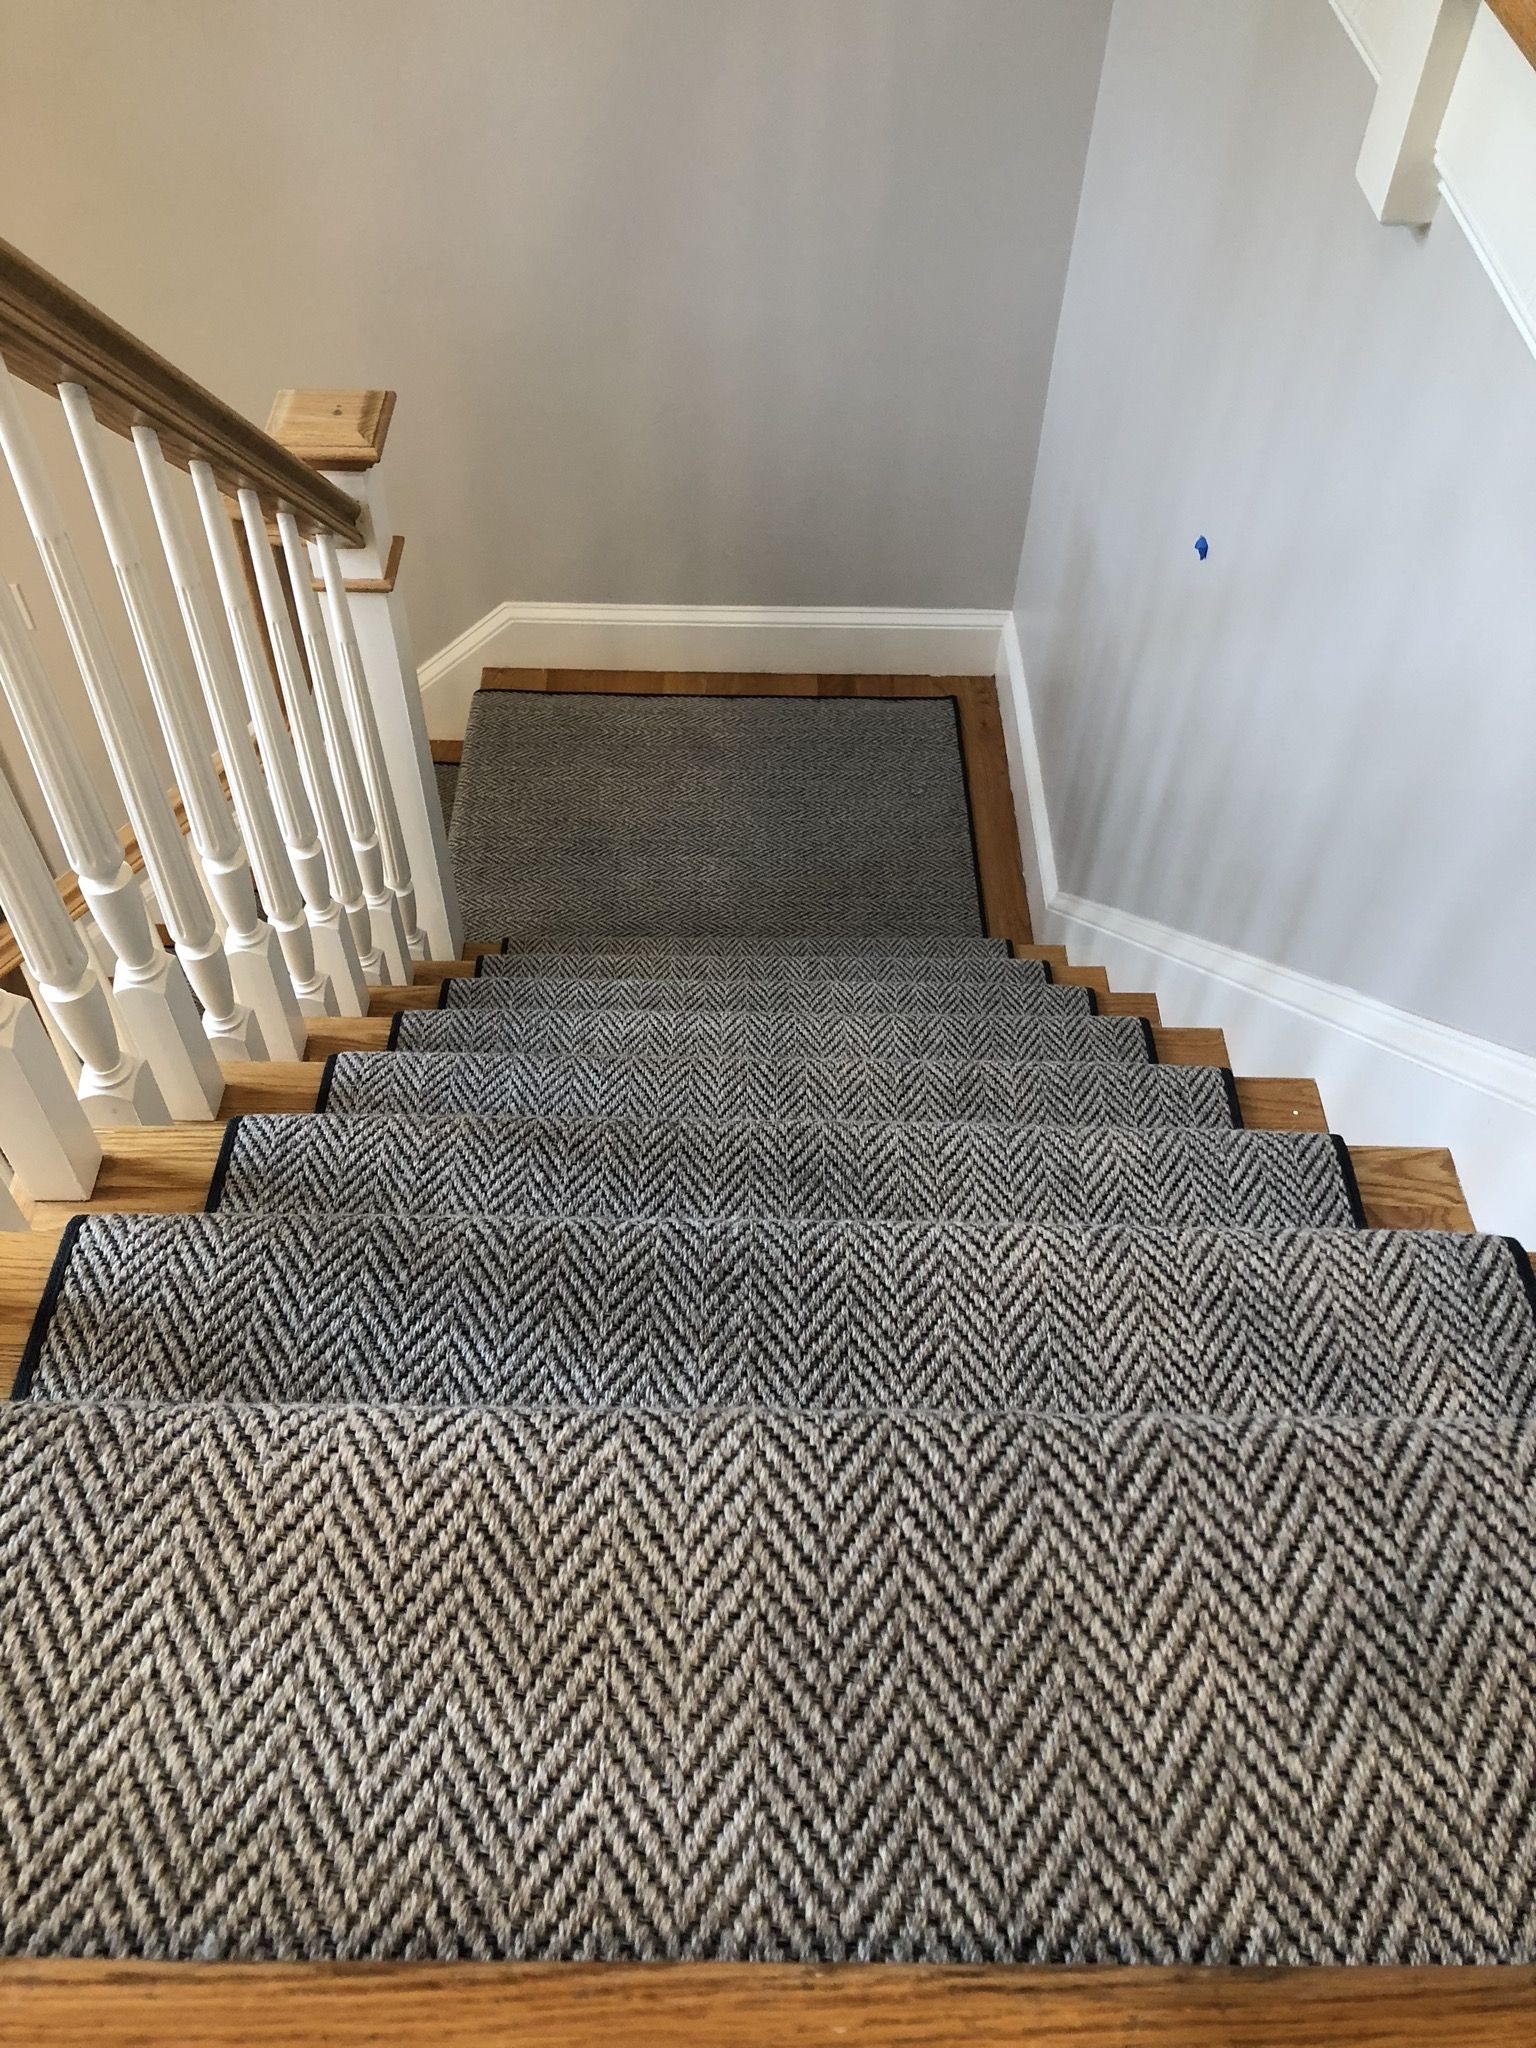 The Best Way To Do Herringbone Runners Heatherly By Momeni The | Best Way To Carpet Stairs | Hardwood | Carpet Cleaning | Install | Wooden Stairs | Stair Runner